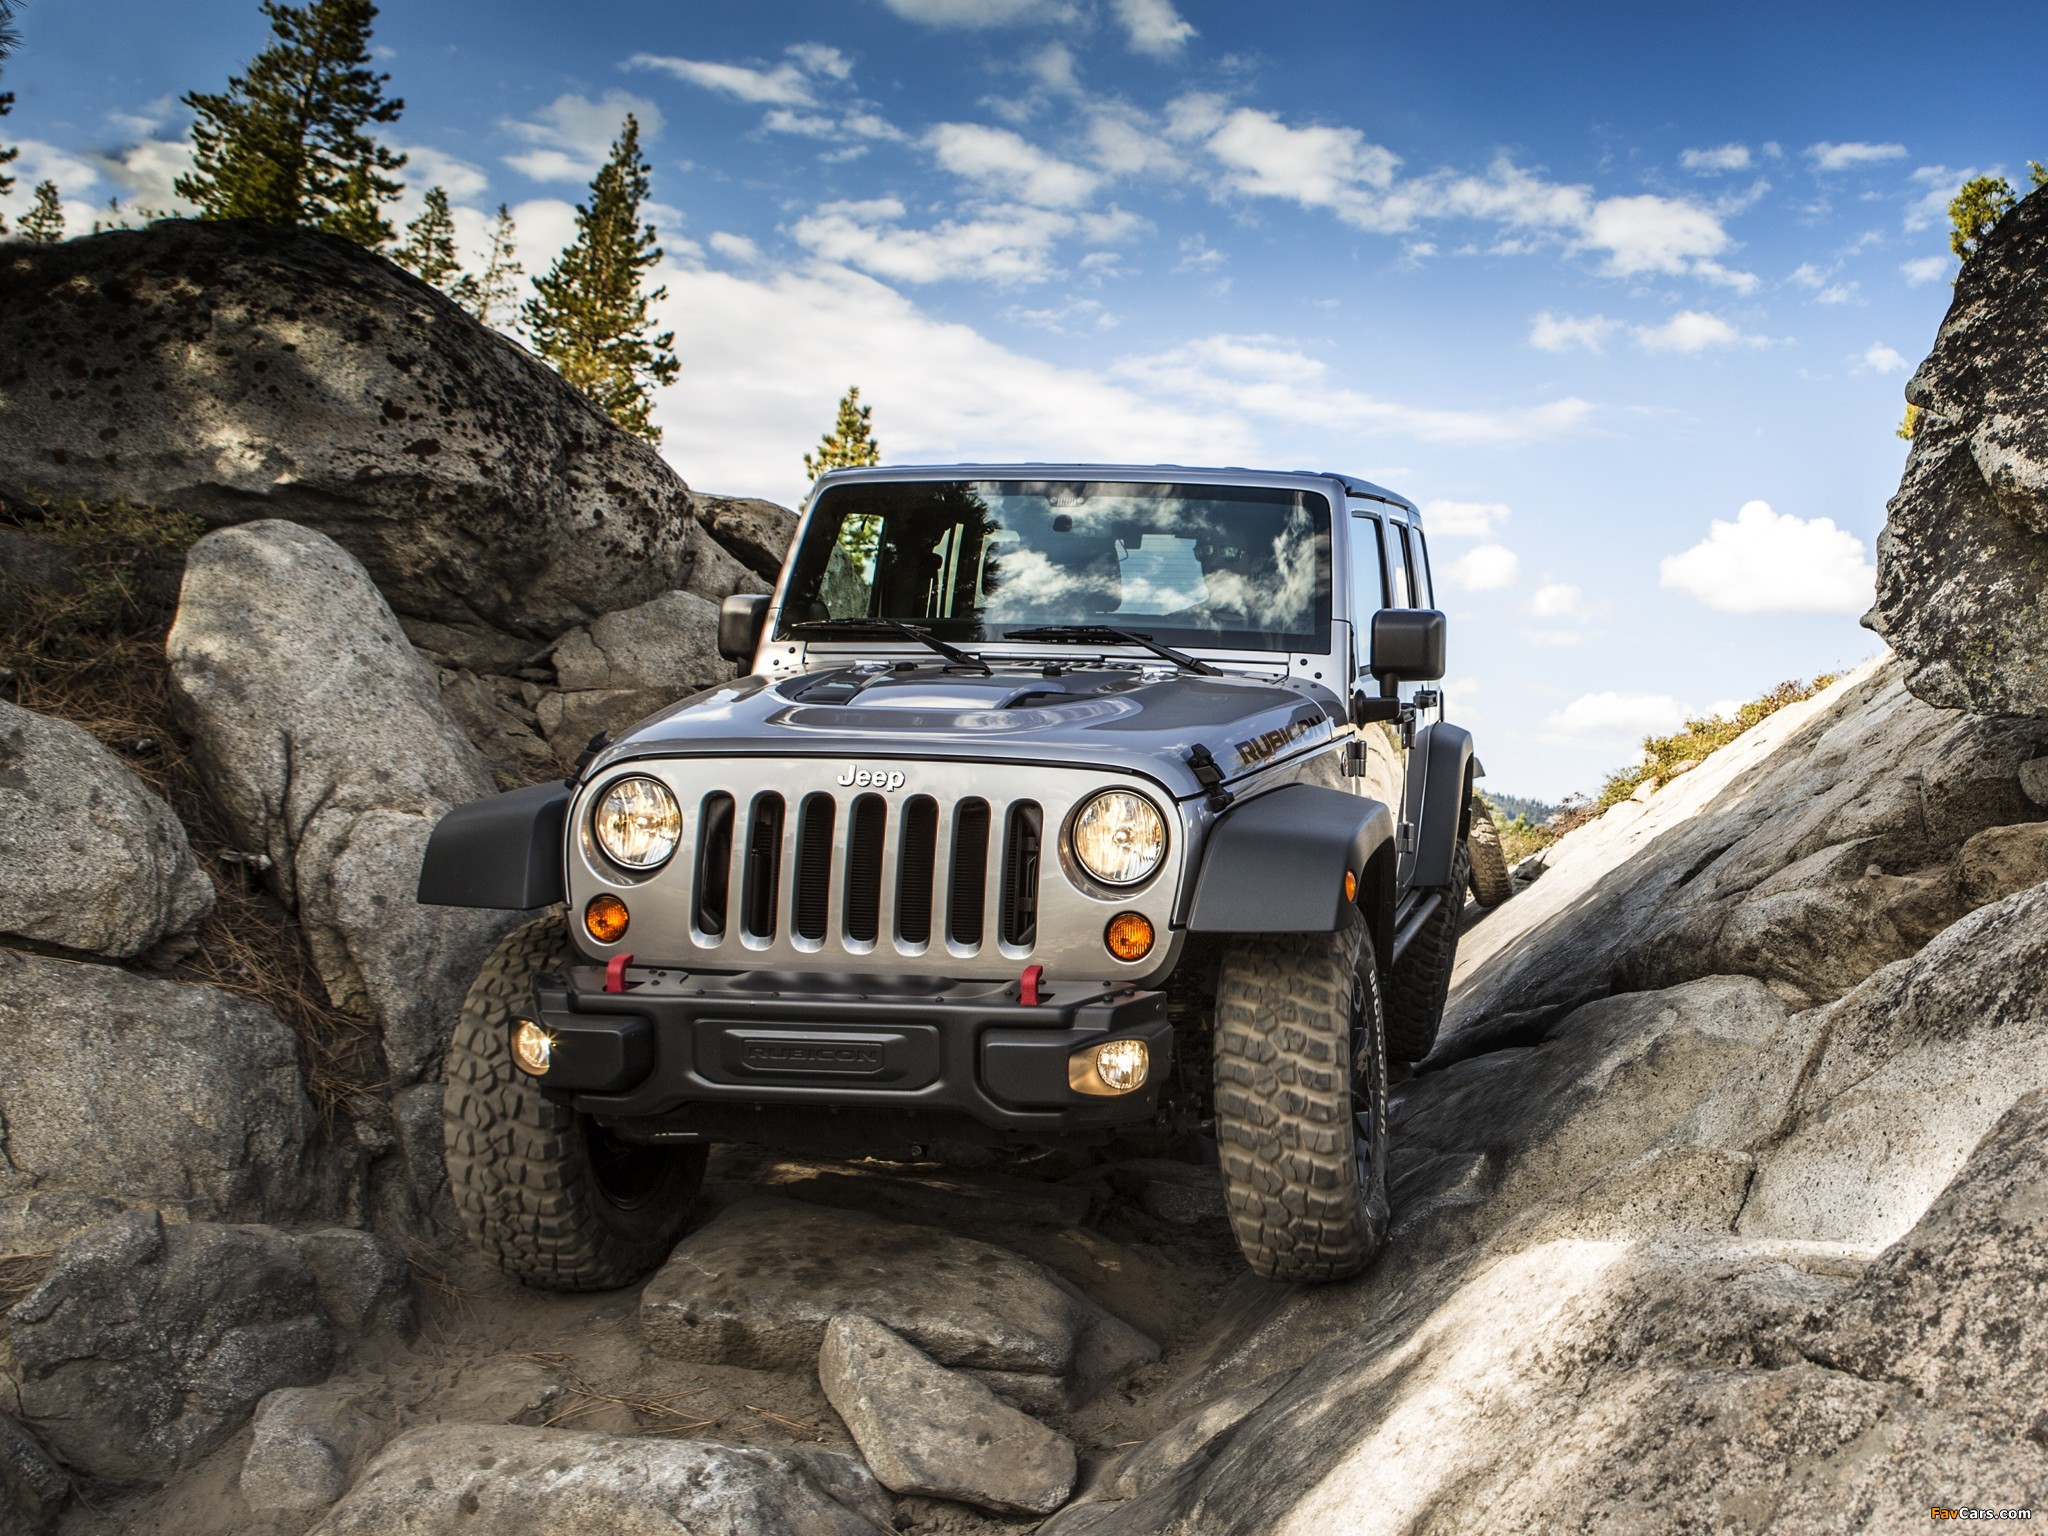 Jeep Wrangler Unlimited Rubicon 10th Anniversary (JK) 2013 images (2048 x 1536)